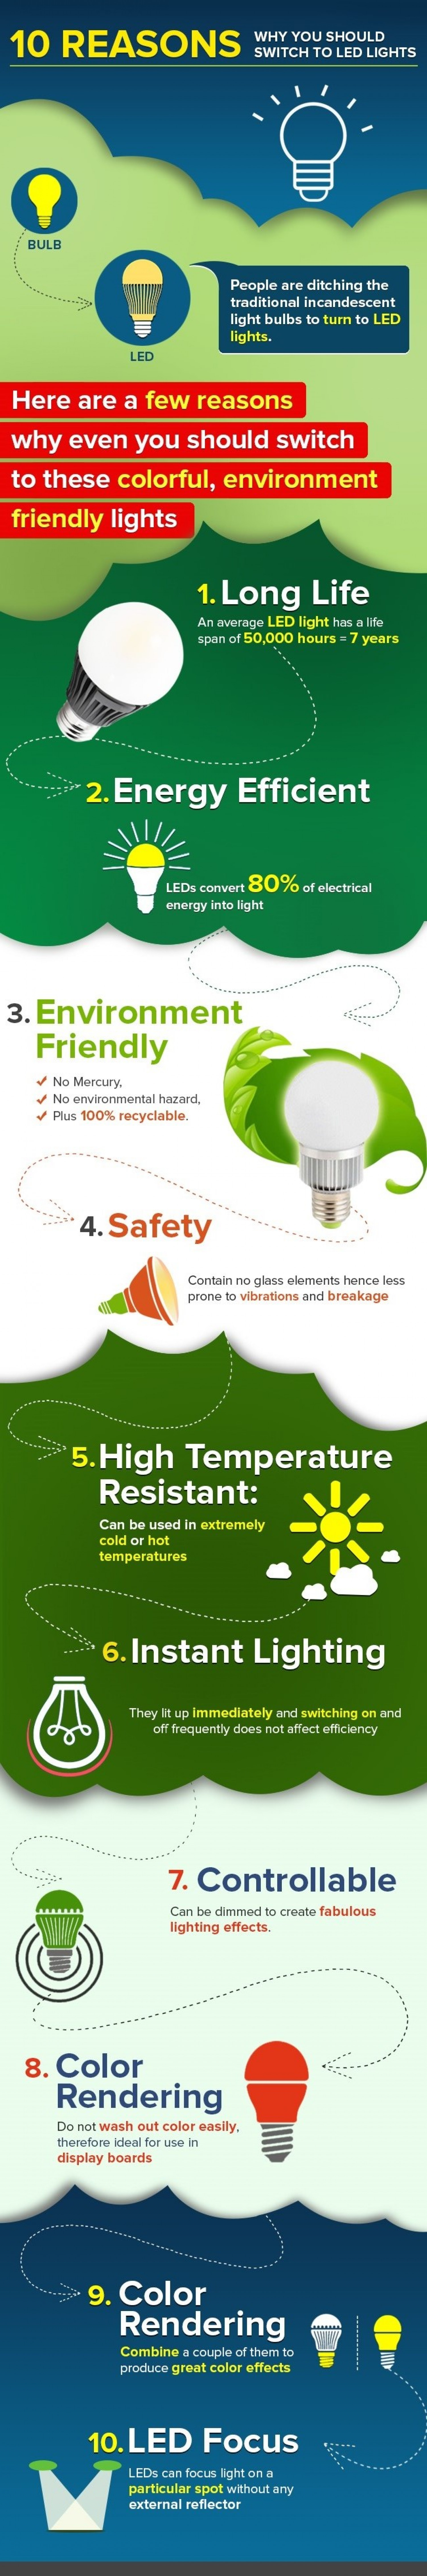 10 Reasons Why You Should Switch To LED Lights Infographic